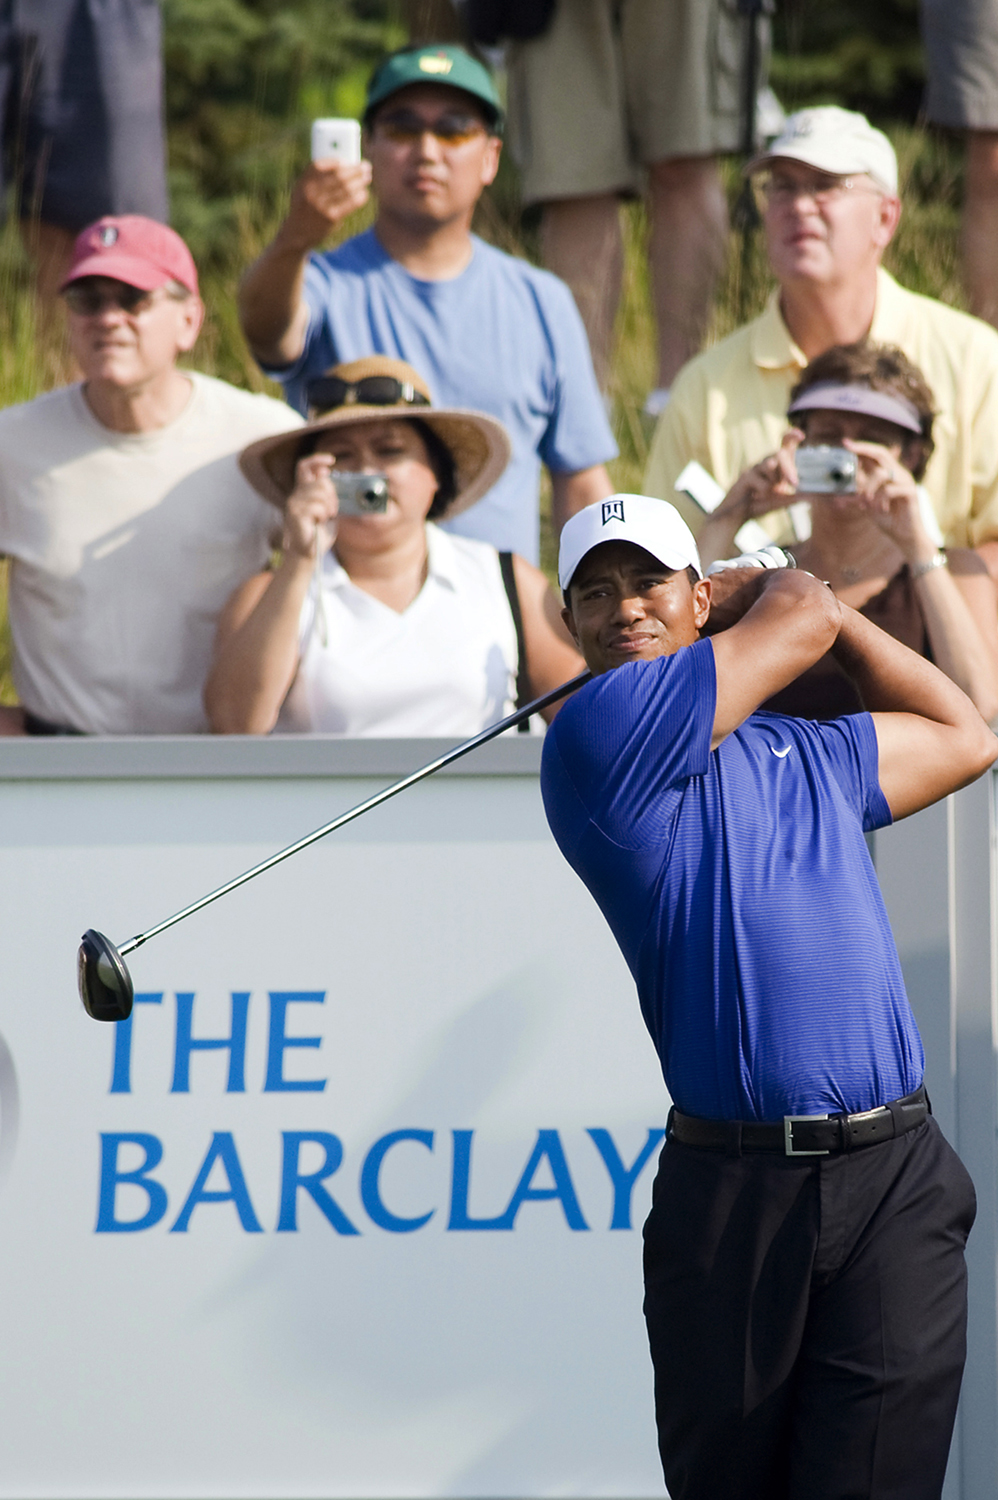 Spectators snap photos as Tiger Woods tee off at one of the holes during The Barclays Classic Pro-Am at Liberty National Golf Course. (Reena Rose Sibayan | The Jersey Journal)